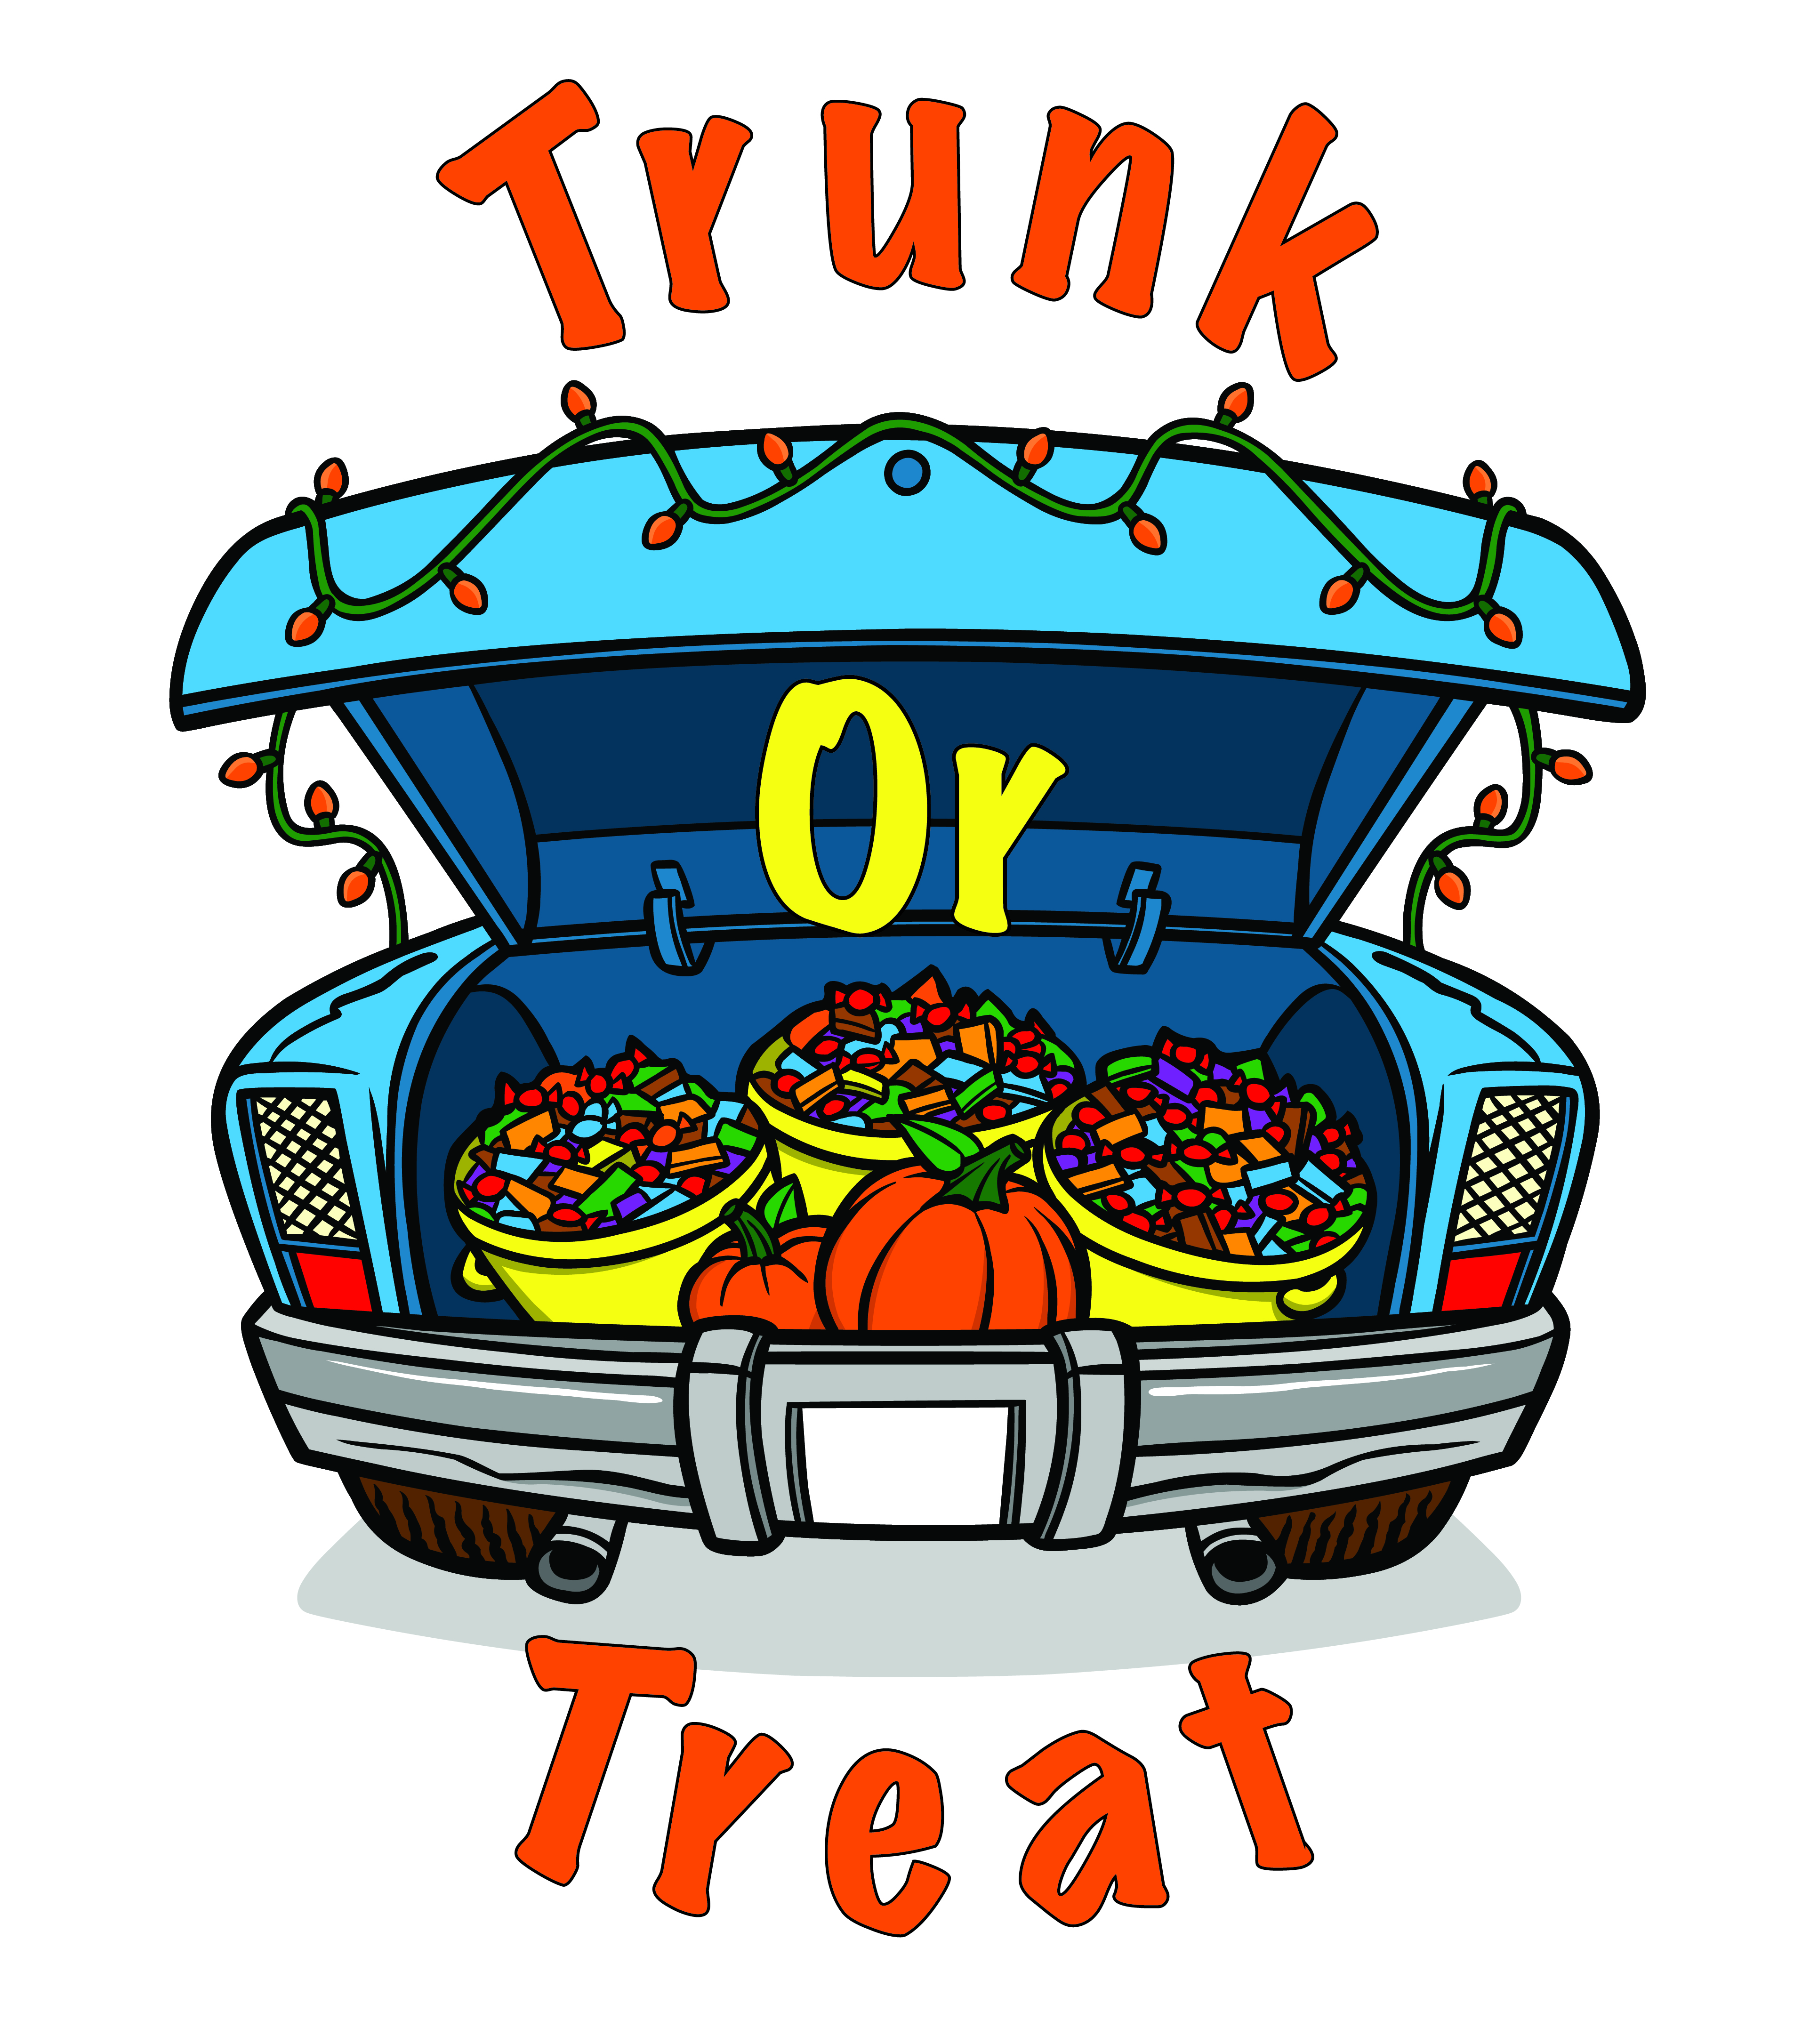 trunk or treat seagoville church of christ rh seagoville org trunk or treat clipart black and white trunk or treat clipart black and white